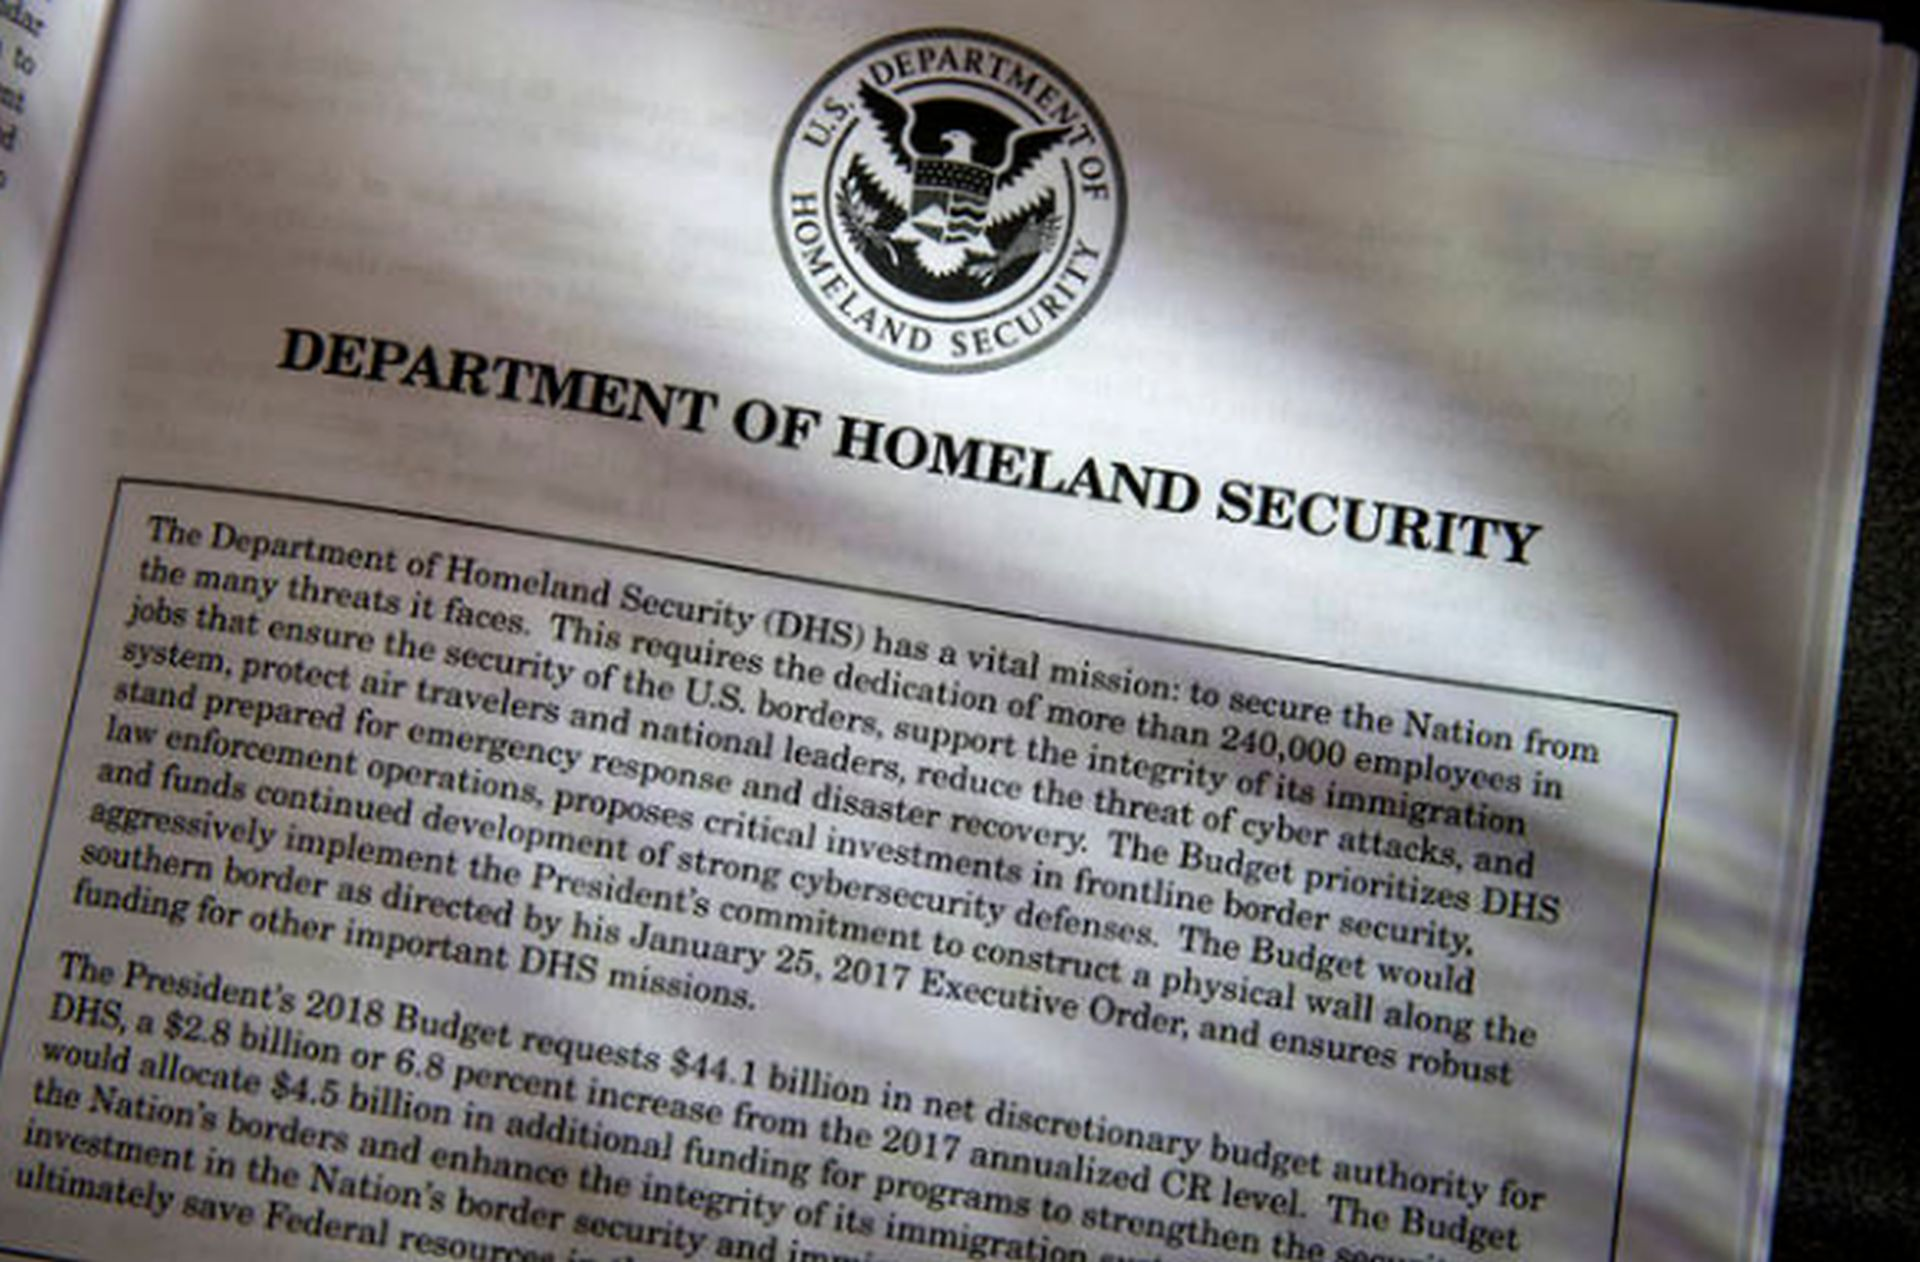 Proposals for the Homeland Security Department in President Donald Trump's first budget are displayed at the Government Printing Office in Washington, Thursday, March, 16, 2017. (AP WIREPHOTO/J. Scott Applewhite